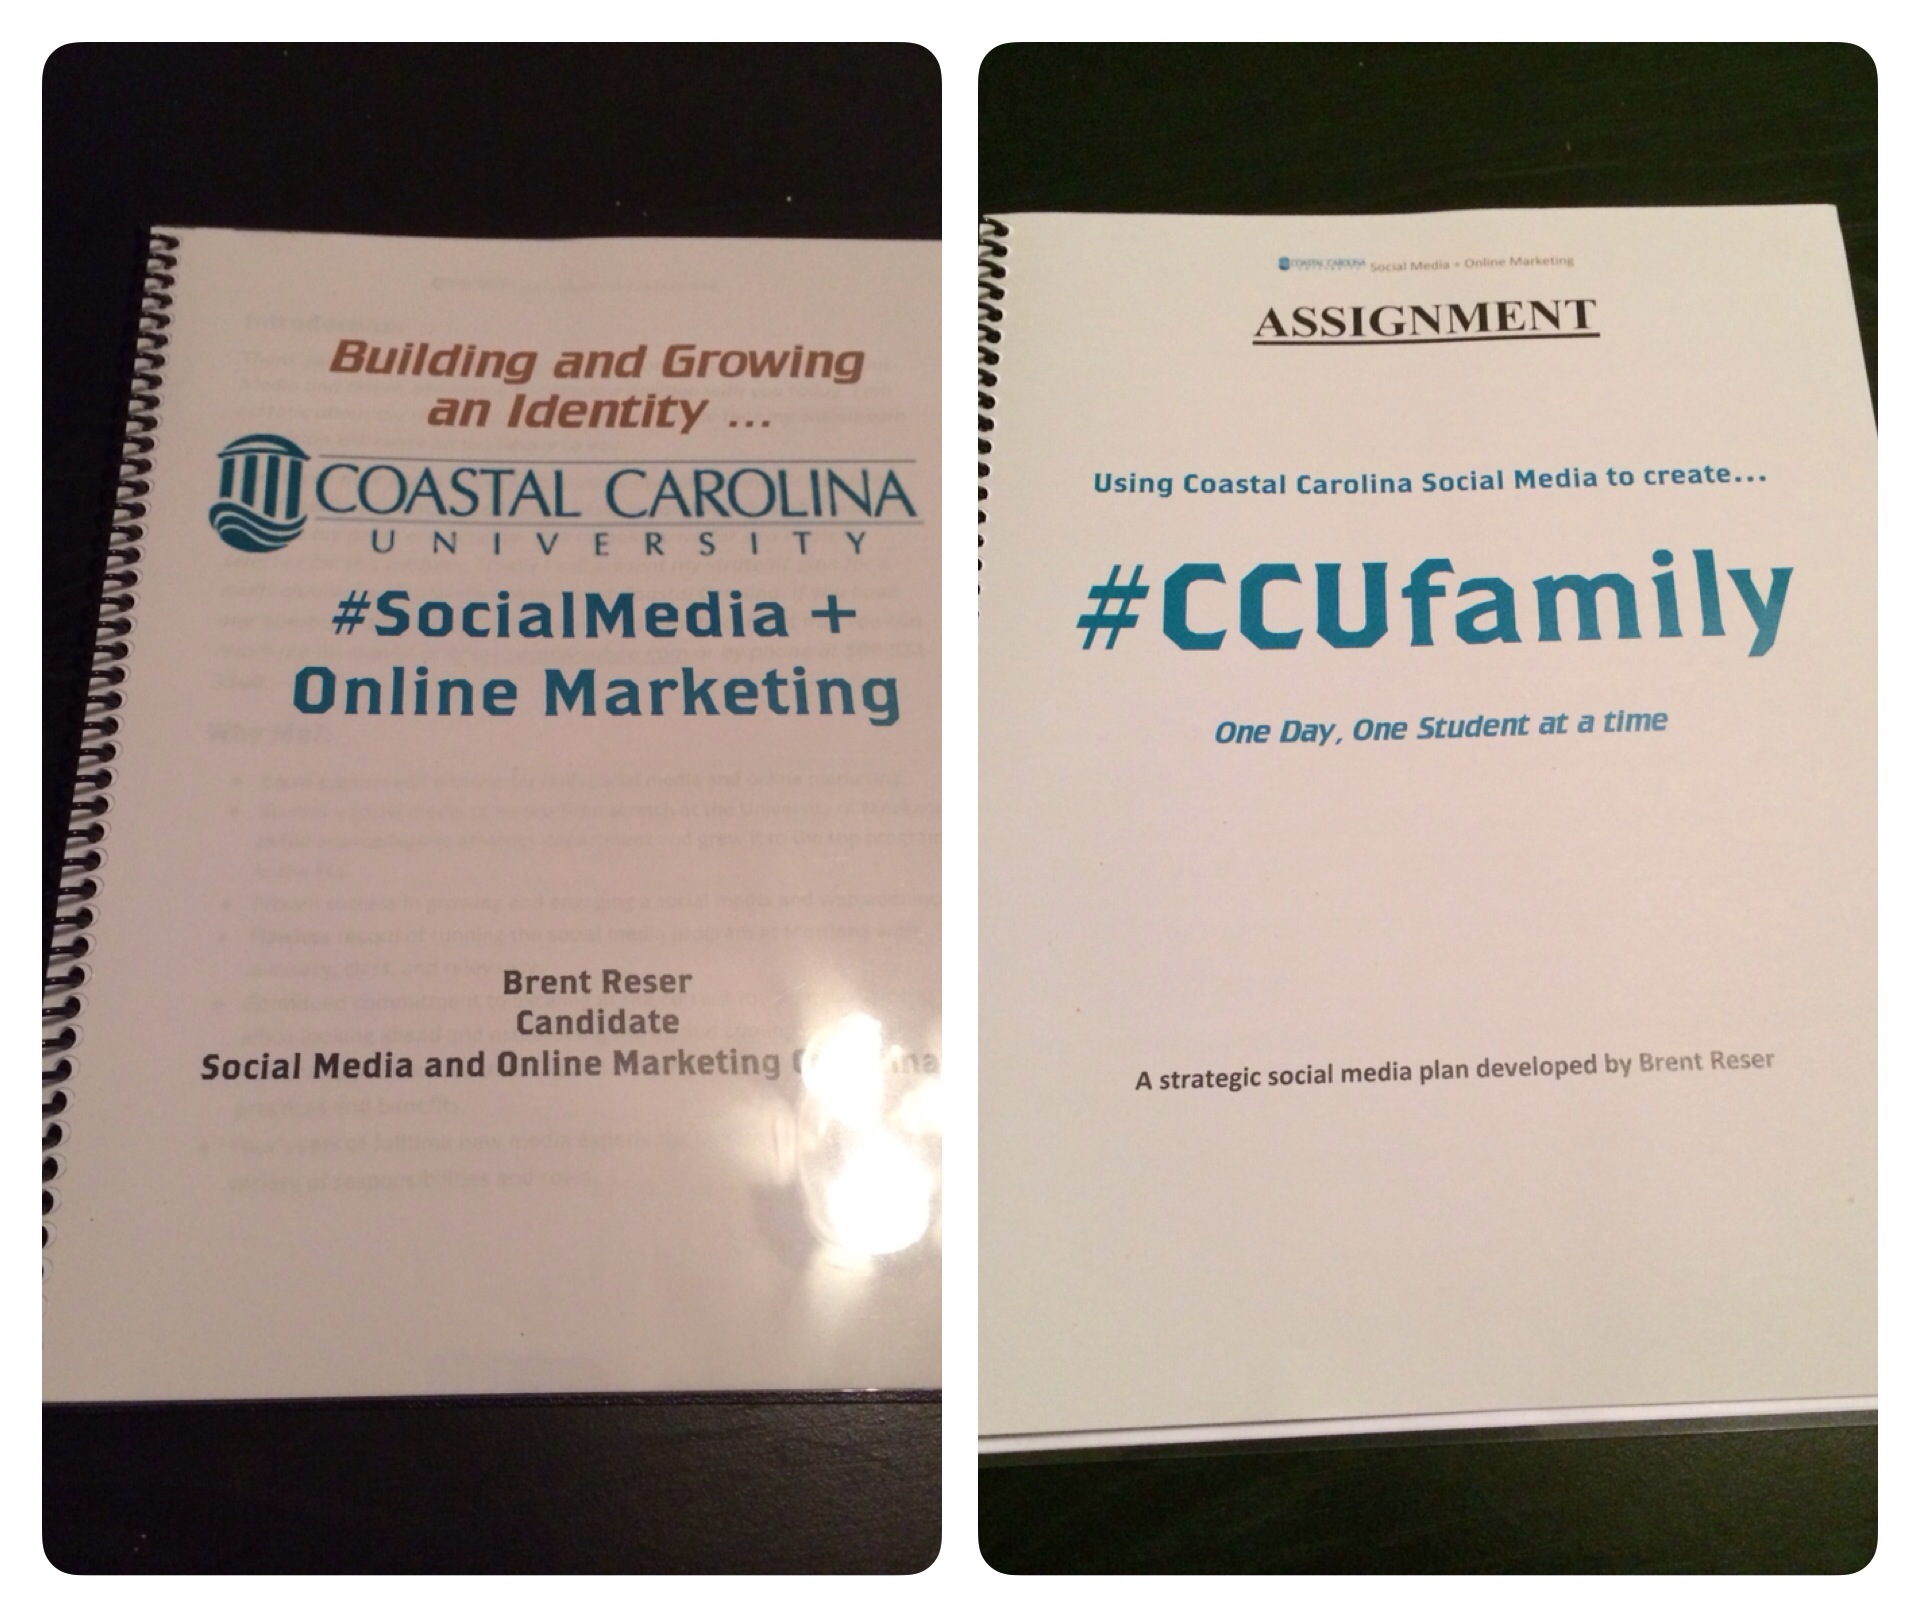 Inside my vision for #CCUSocialMedia was a section devoted to #CCUfamily.